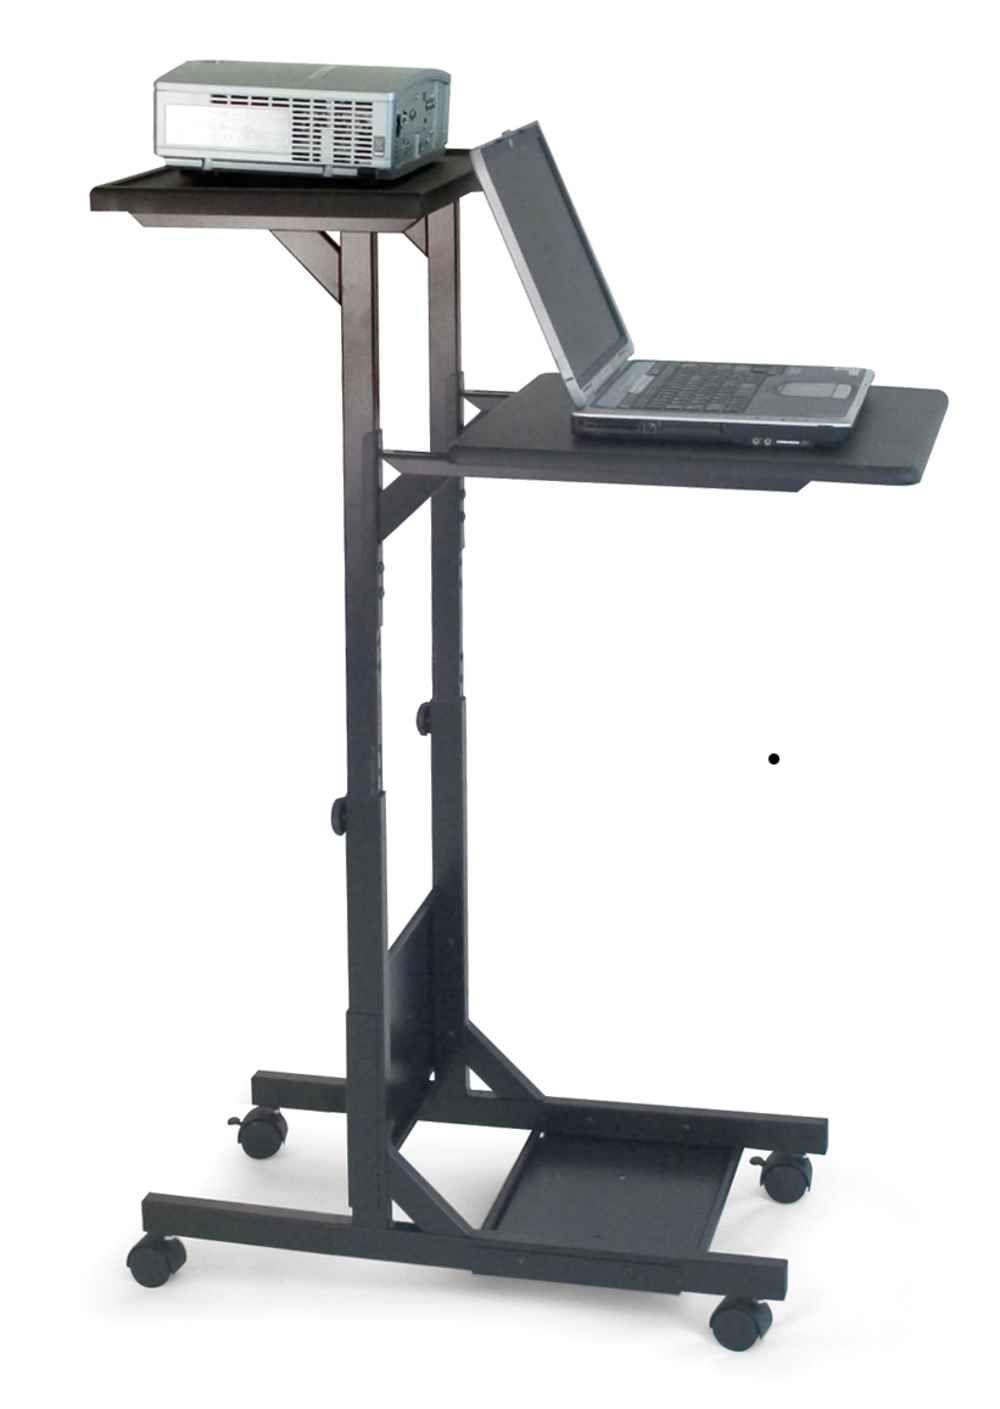 H Wilson Mobile Laptop Stands for Presentation Laptop Stand